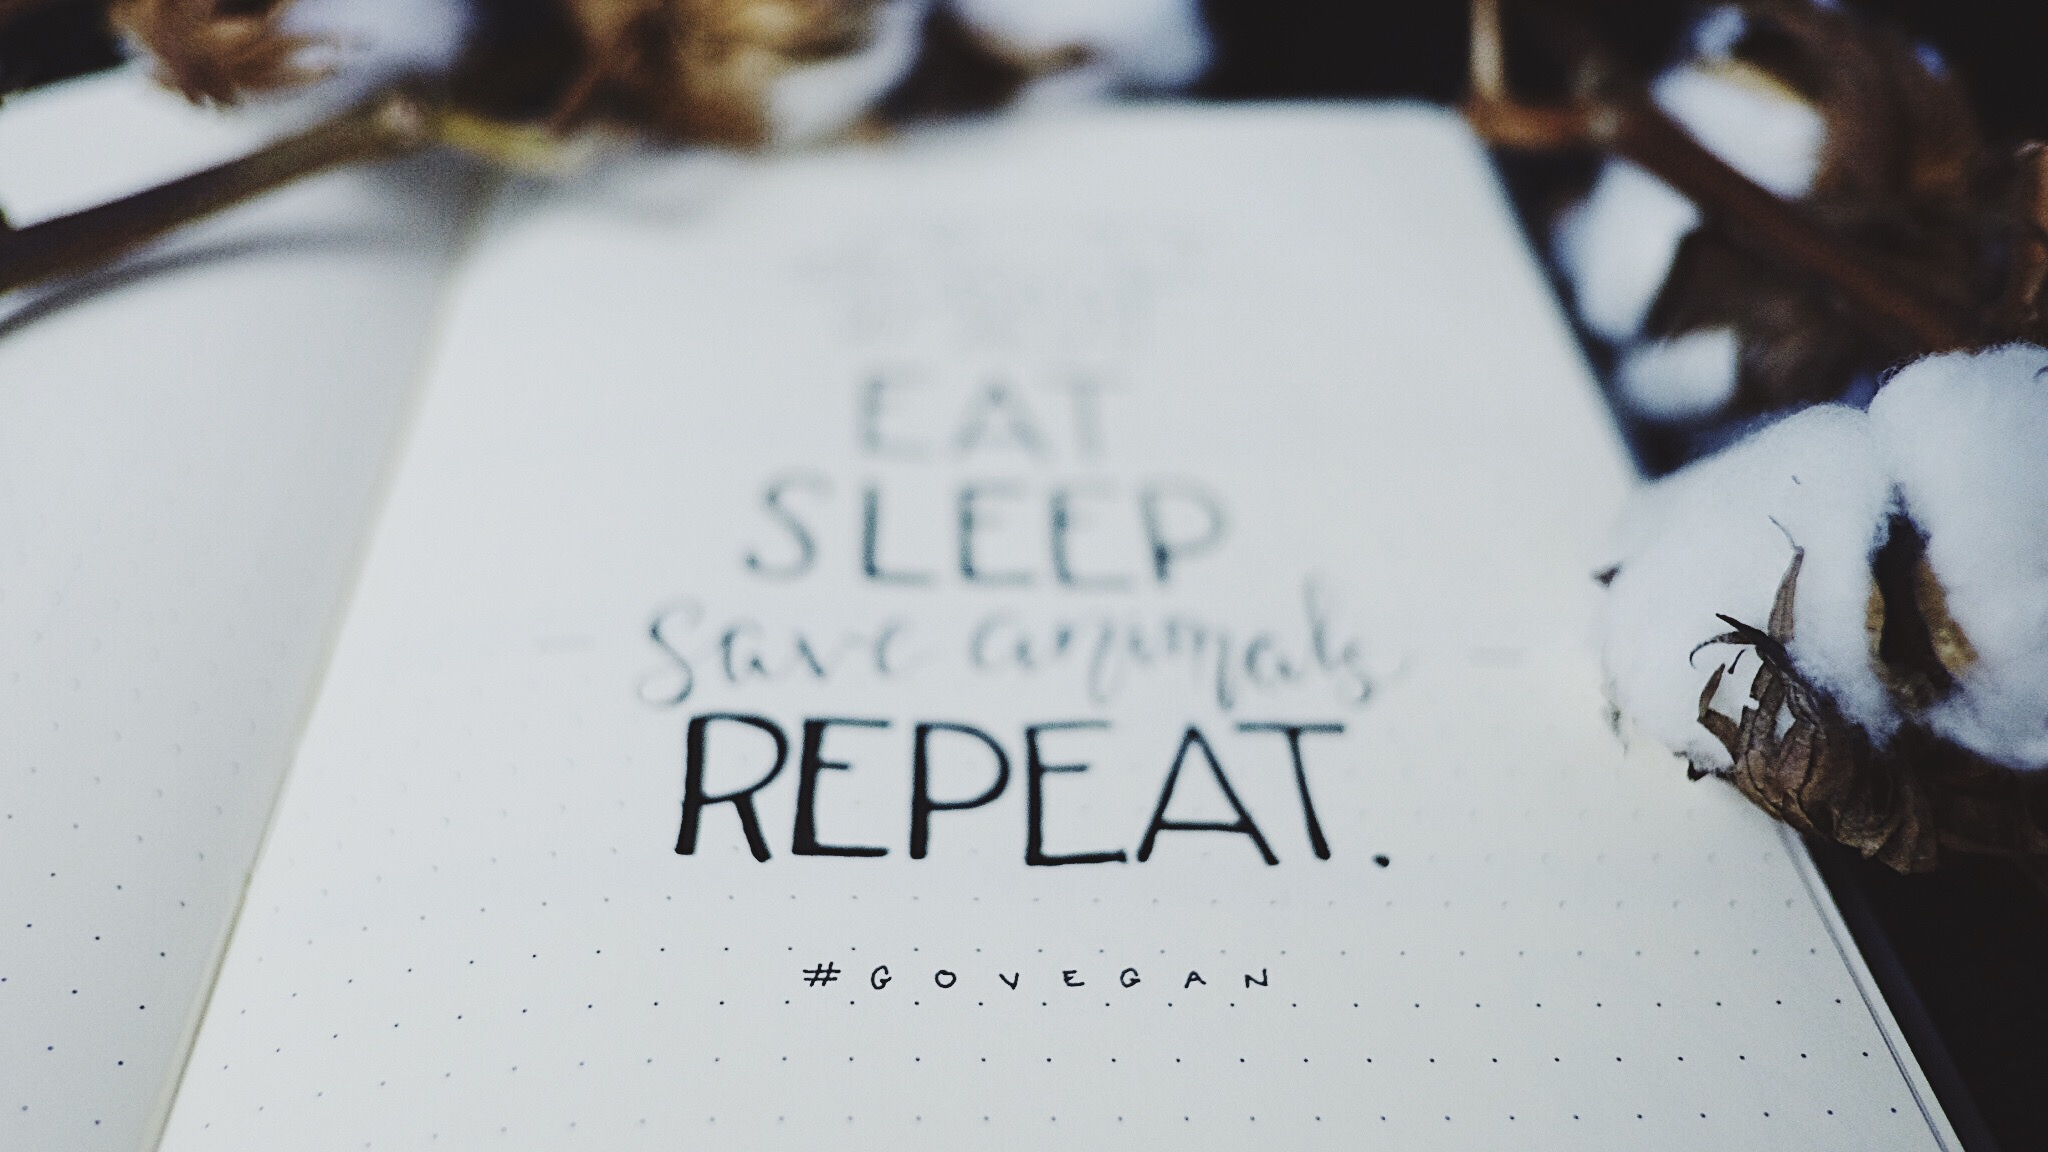 April 2018 Bullet Journal Minimalist Theme Eat Sleep Save Animals Repeat #GoVegan // Plant Based Bride